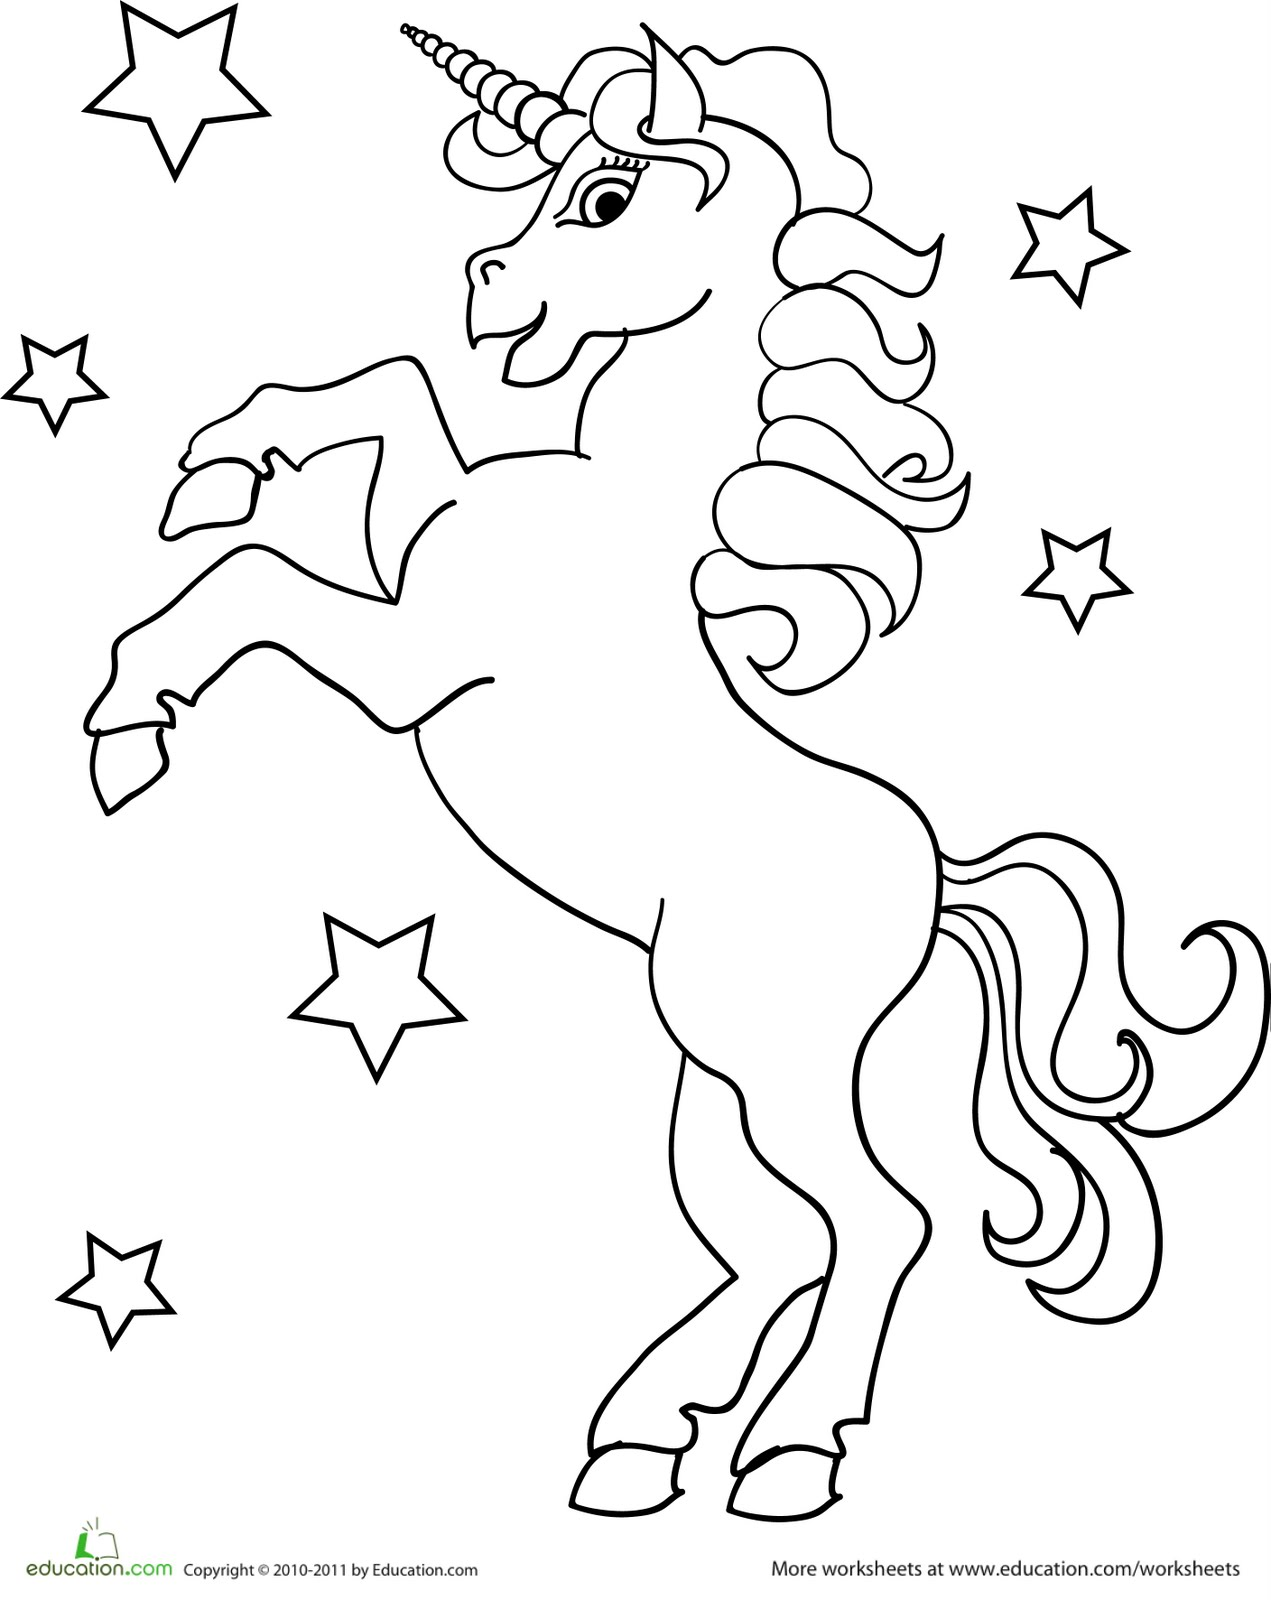 childrens coloring pages unicorn - photo#25